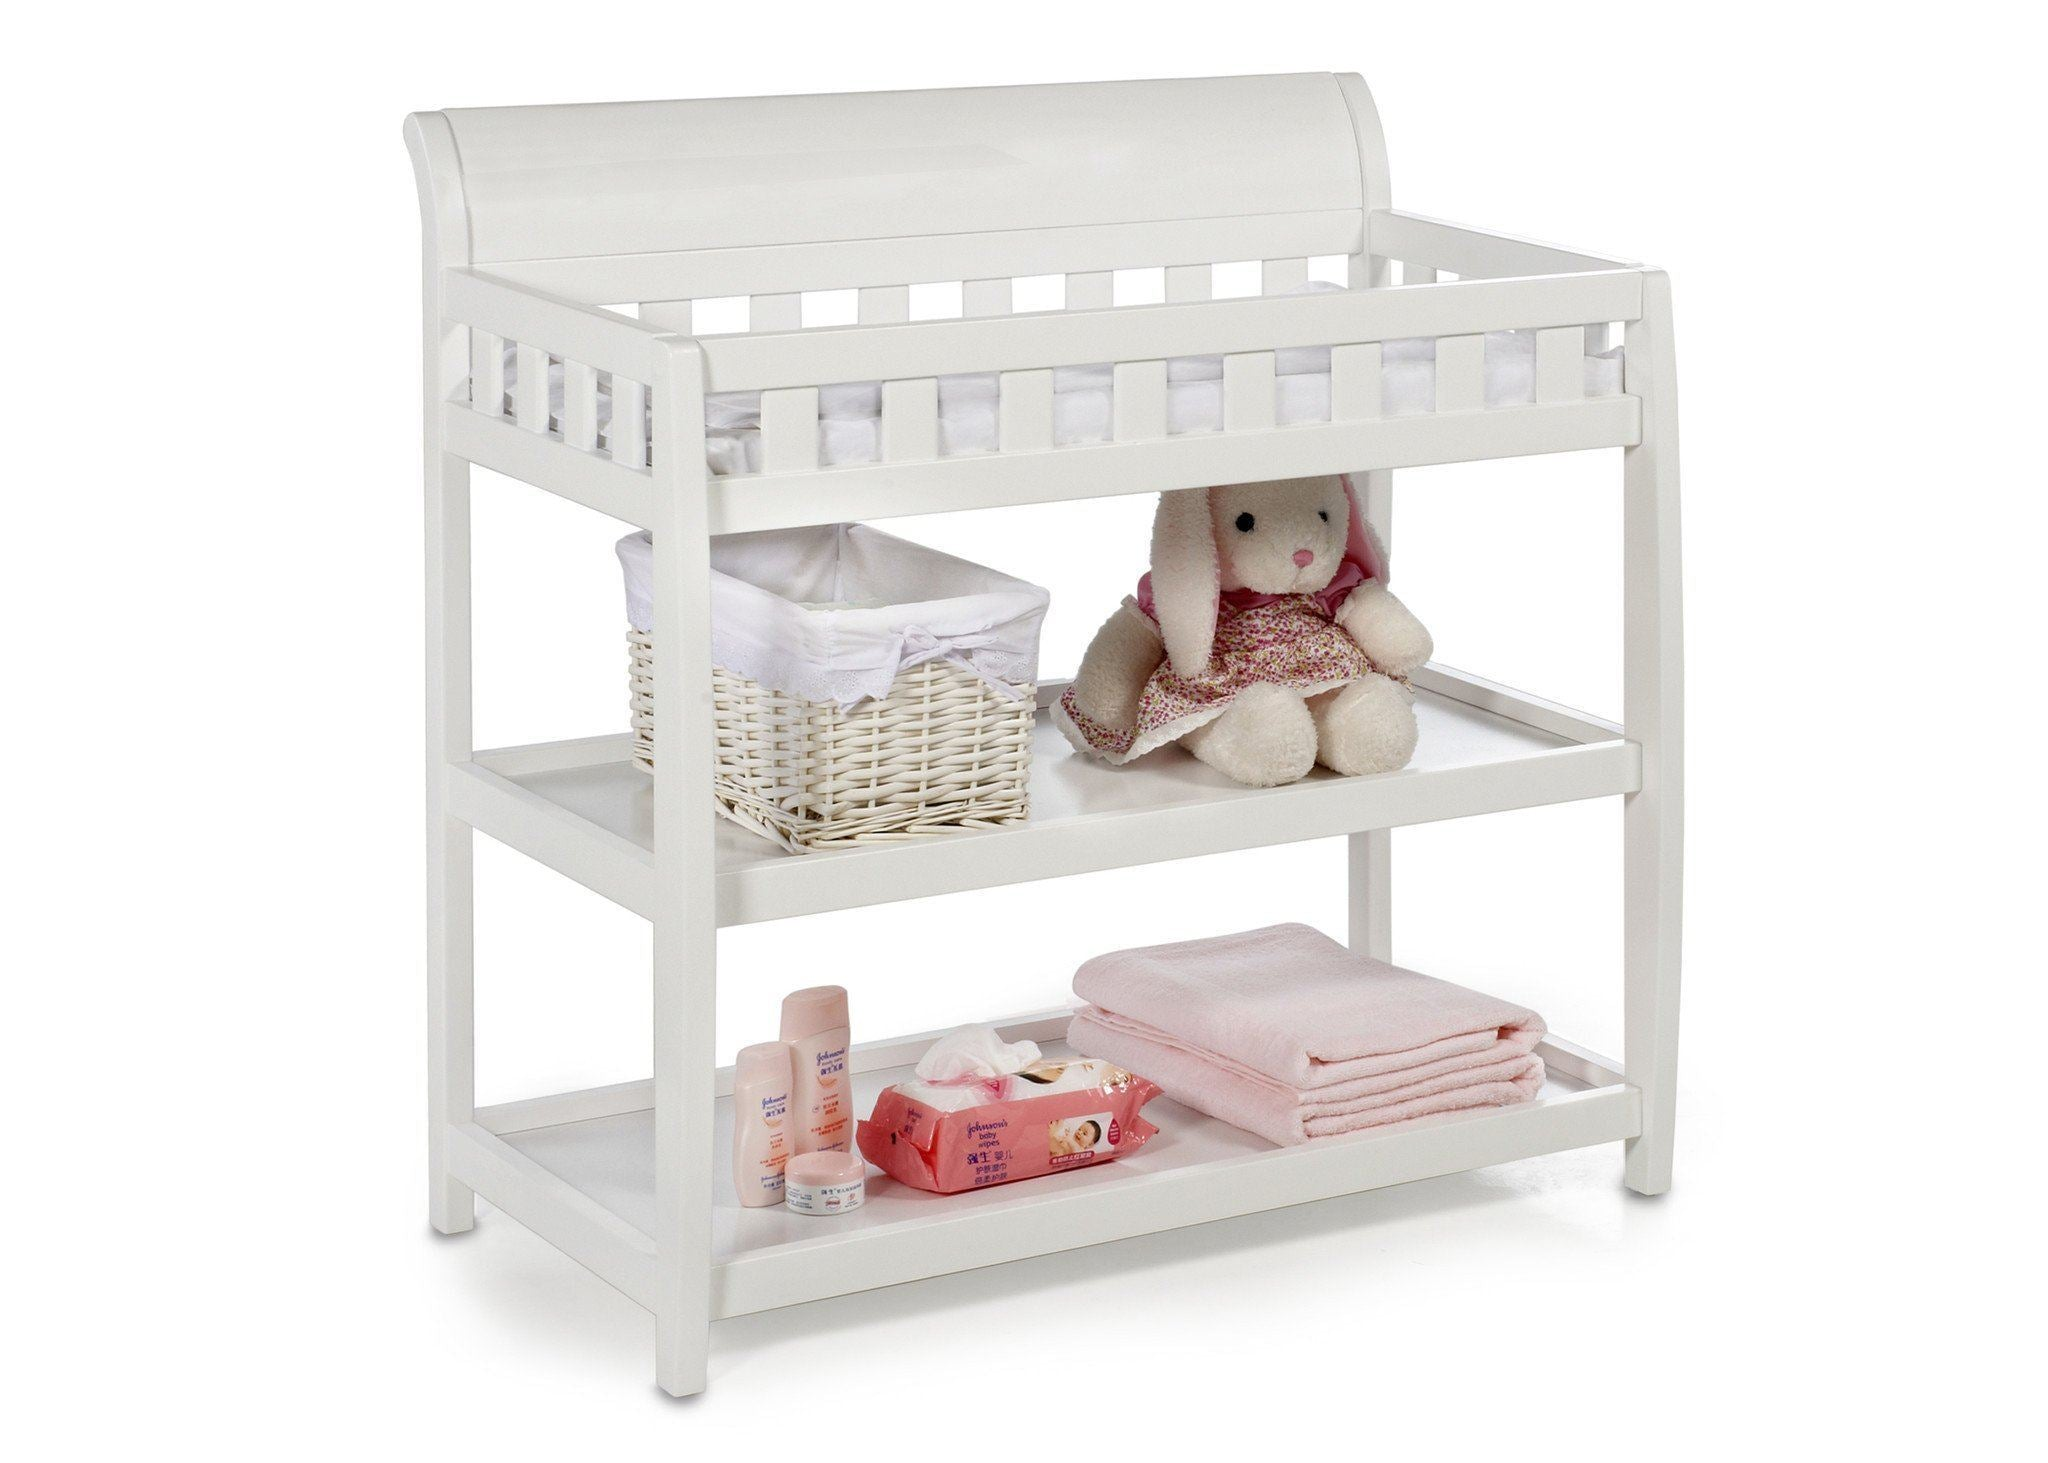 Attractive Delta Children White (100) Bentley Changing Table, Right View With Props  A1a ...